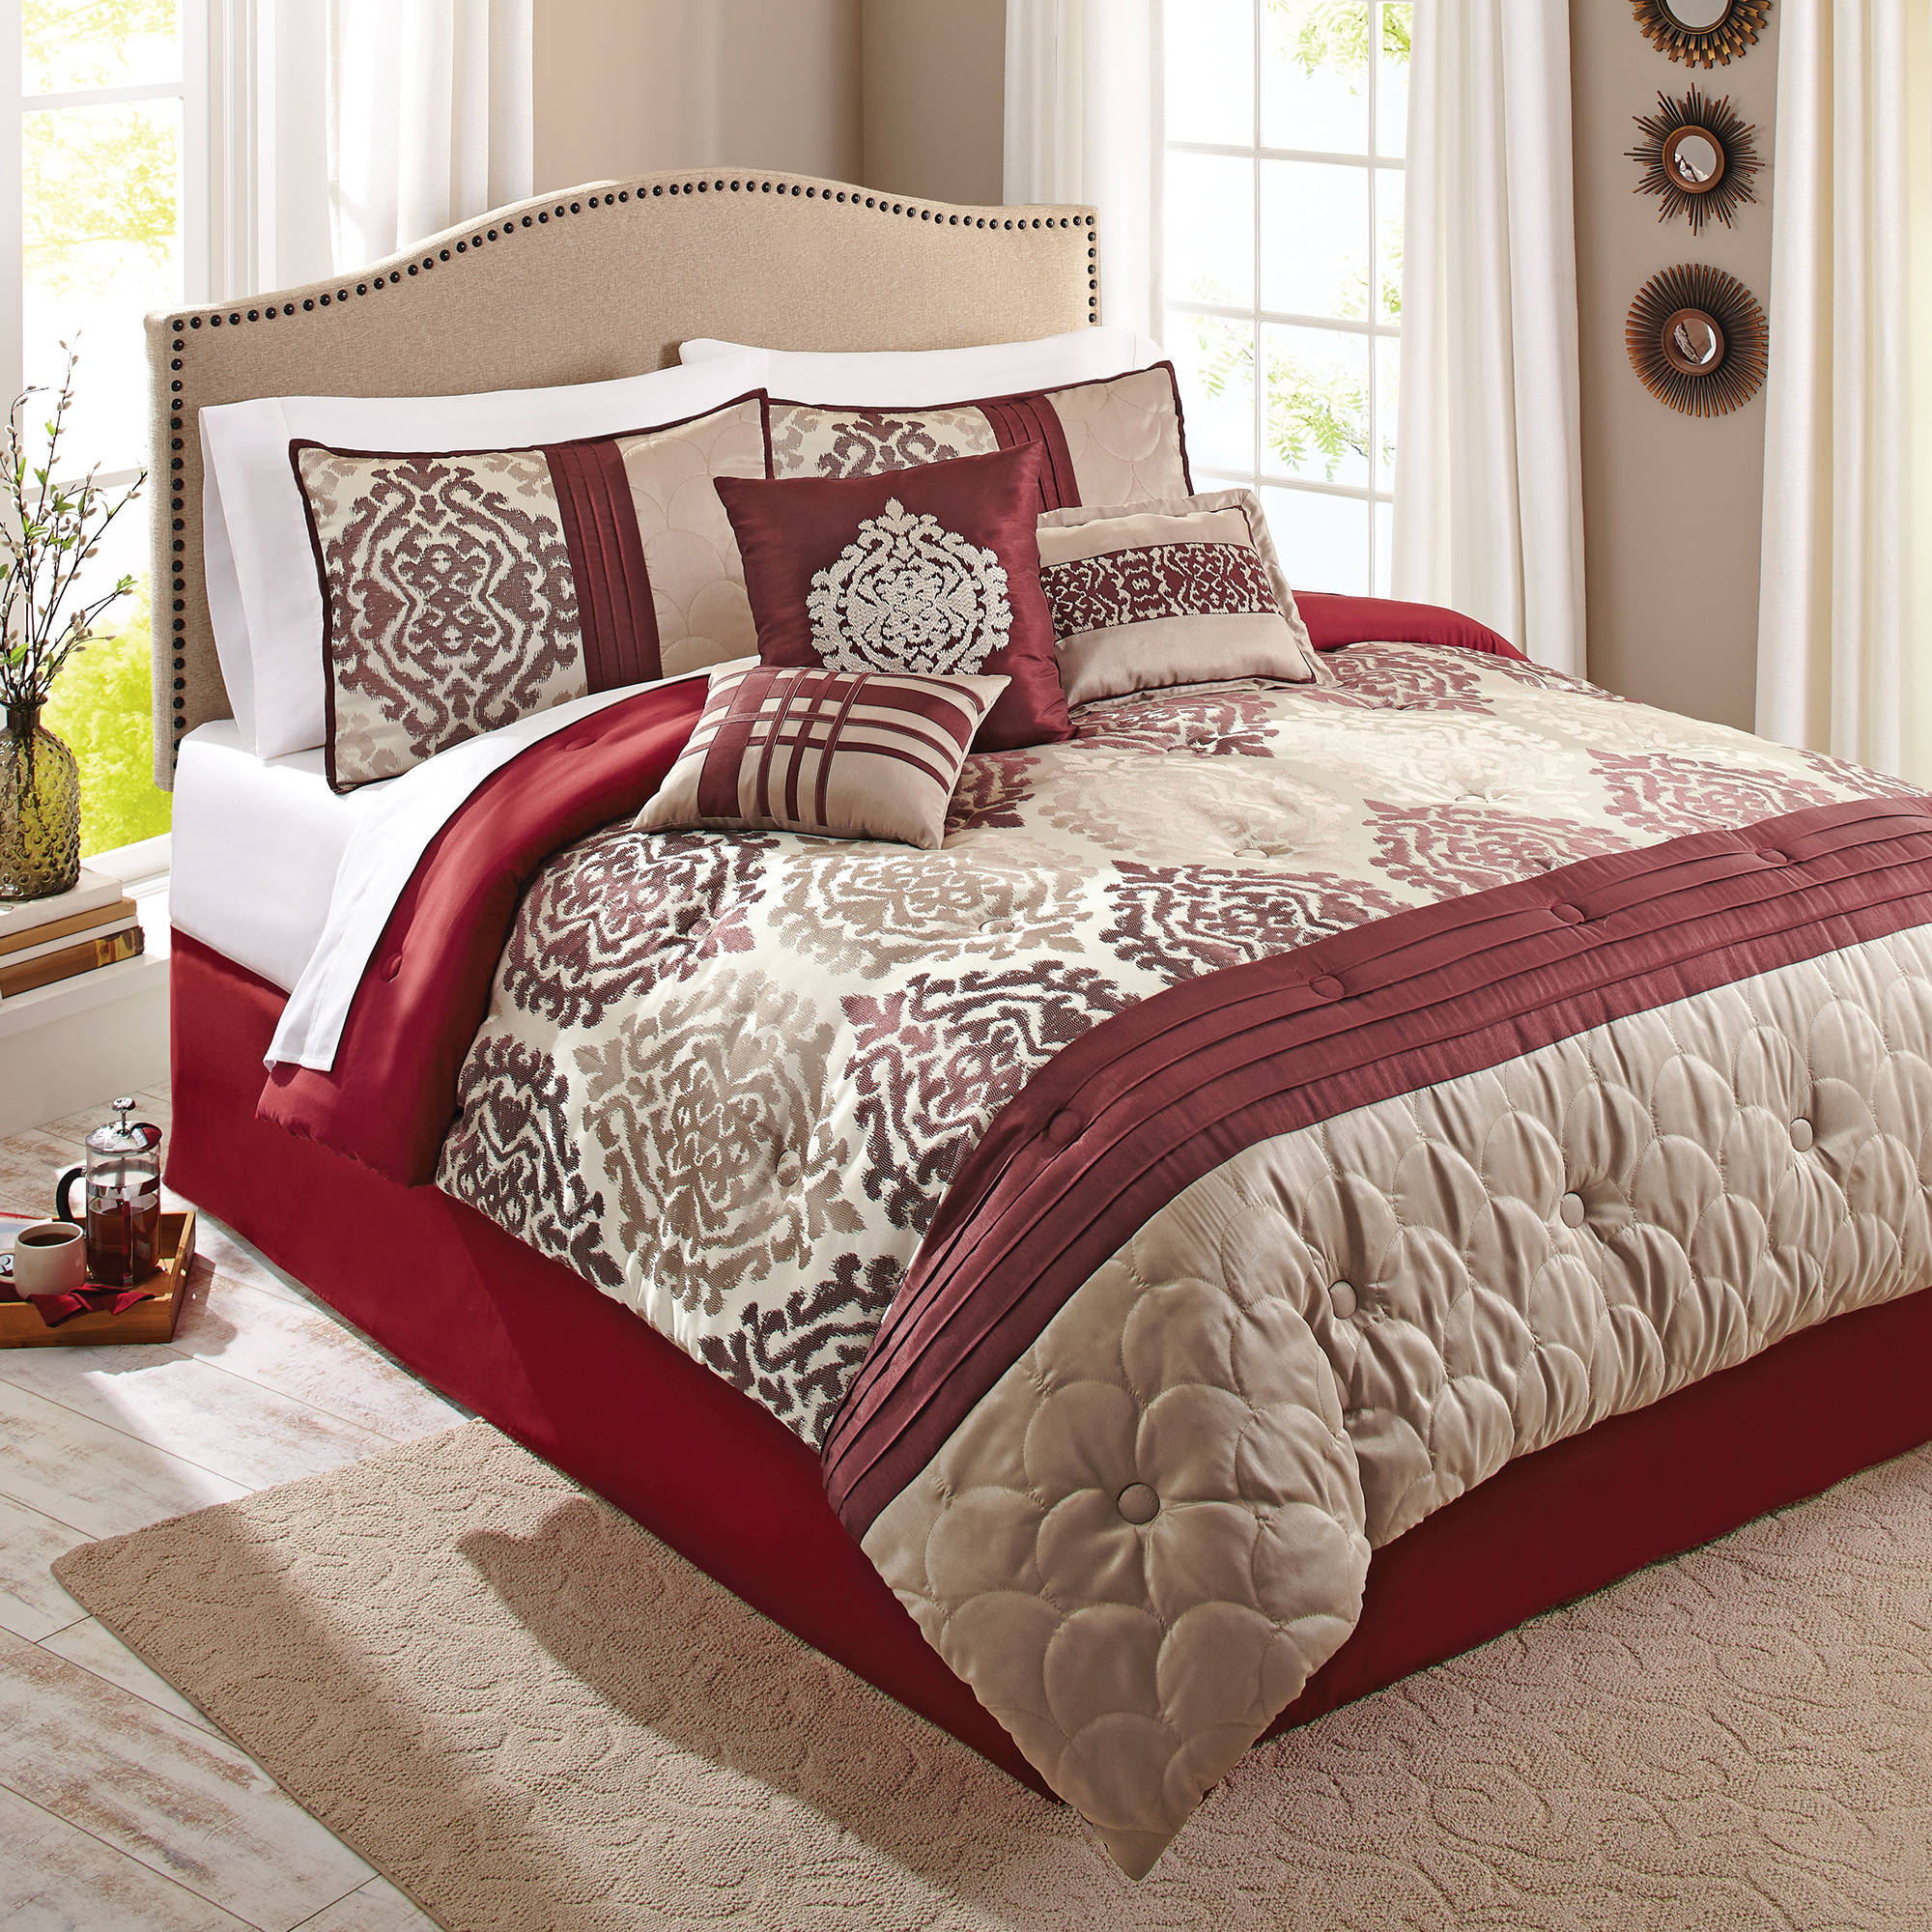 Exceptionnel Better Homes And Gardens 7 Piece Bedding Comforter Set, Red Ikat    Walmart.com